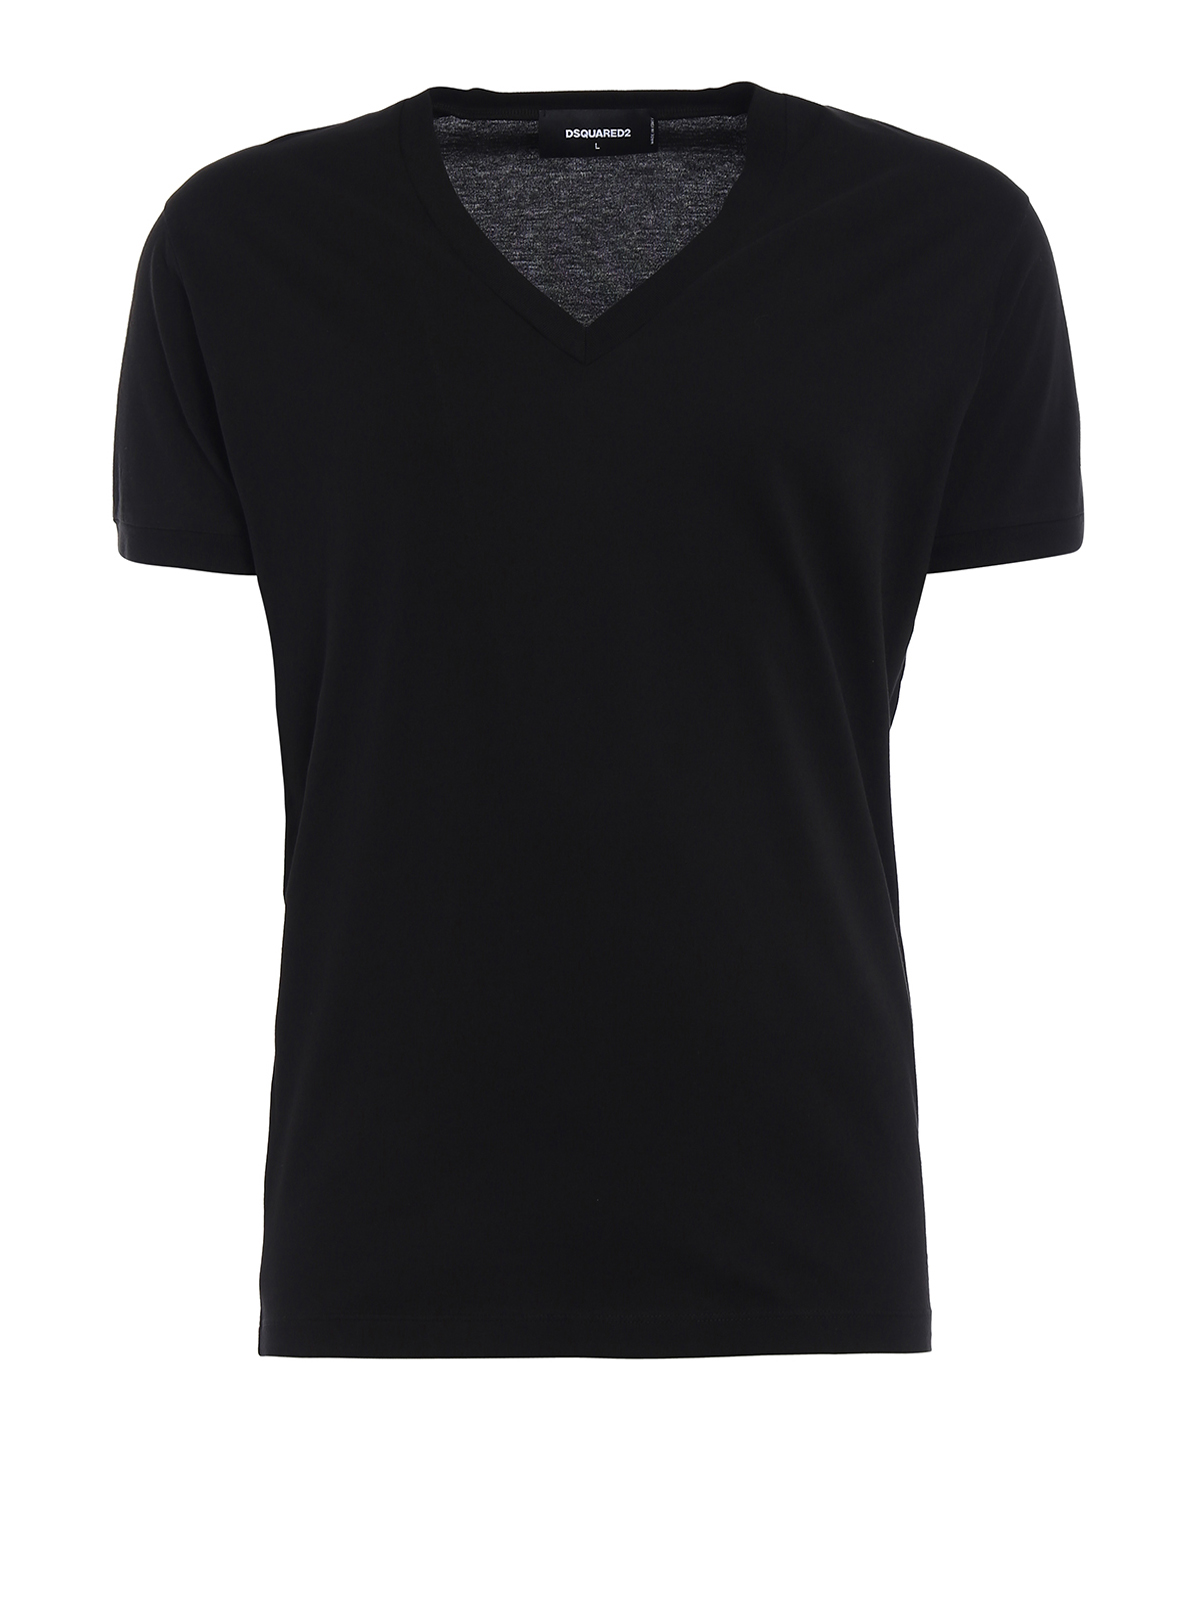 V neck cotton jersey black tee by dsquared2 t shirts for V neck t shirt online shopping